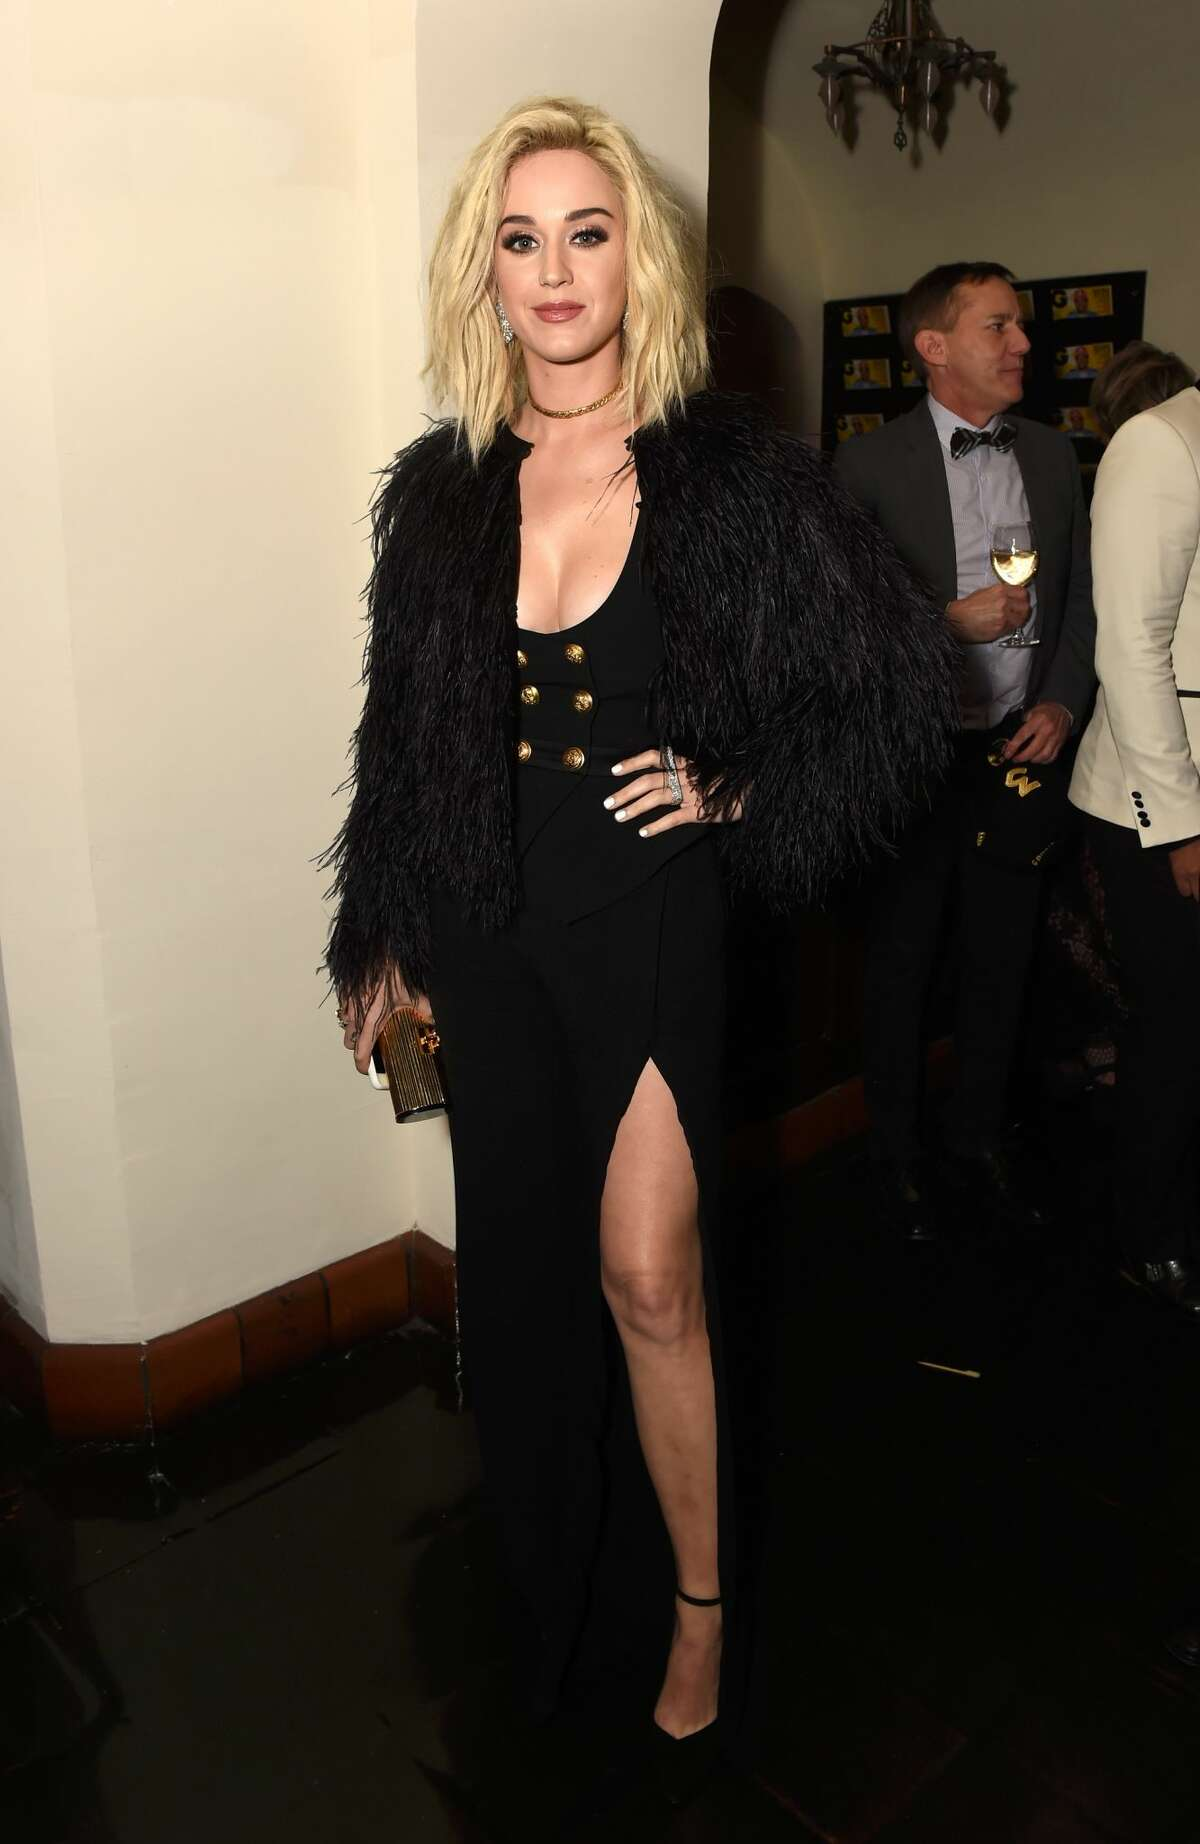 Singer Katy Perry attends GQ and Chance The Rapper Celebrate the Grammys in Partnership with YouTube at Chateau Marmont on February 12, 2017 in Los Angeles, California.